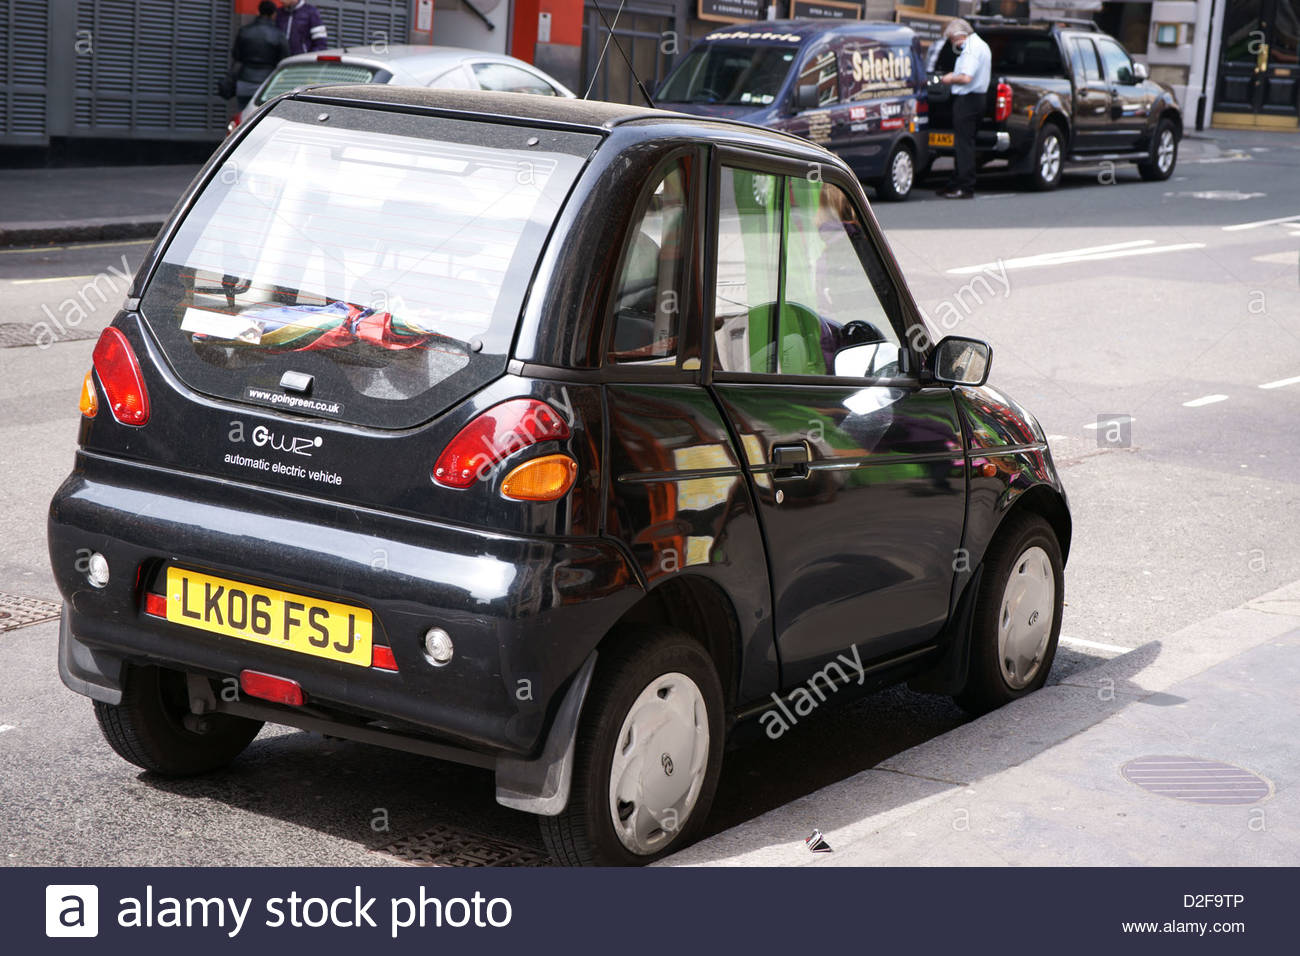 Black G Wiz Electric Car Stock Photo Royalty Free Image